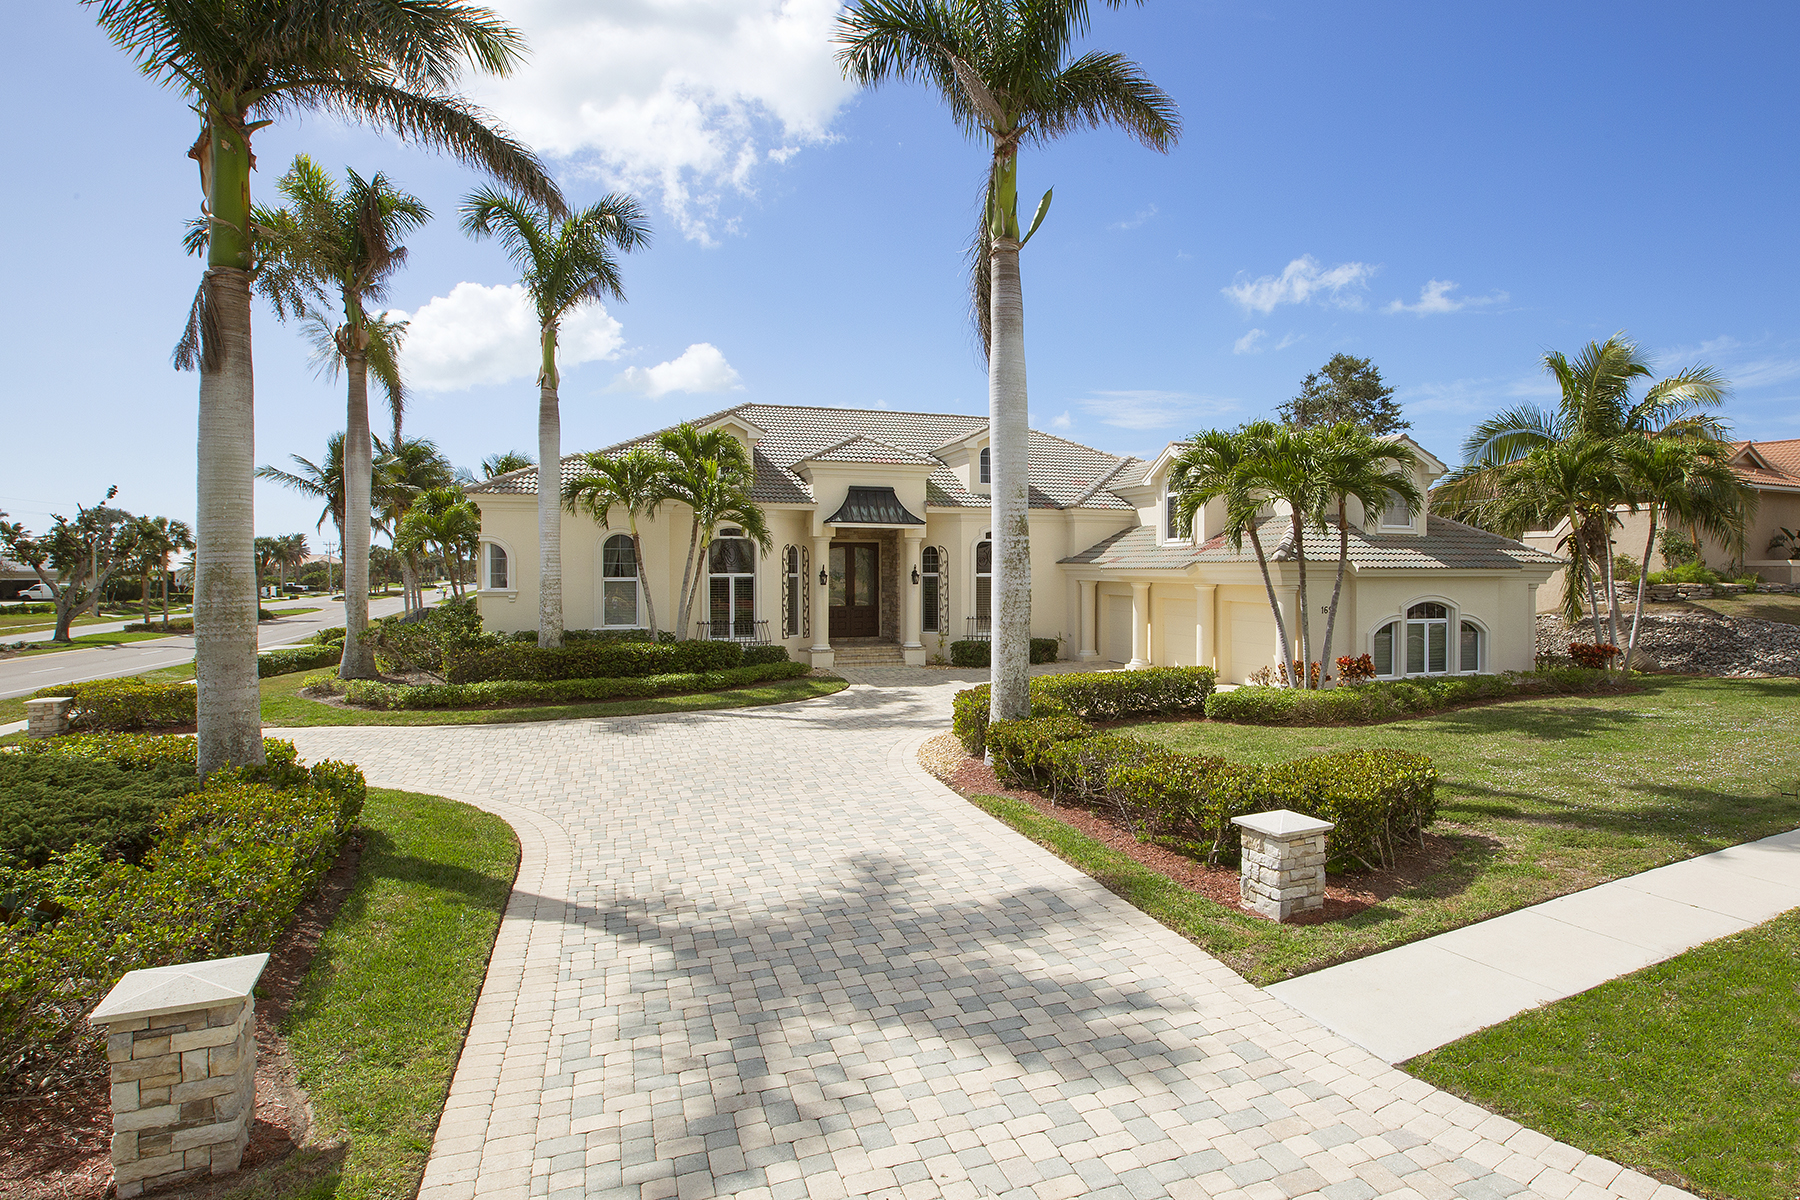 Single Family Home for Sale at MARCO ISLAND 1695 Ludlow Rd, Marco Island, Florida, 34145 United States